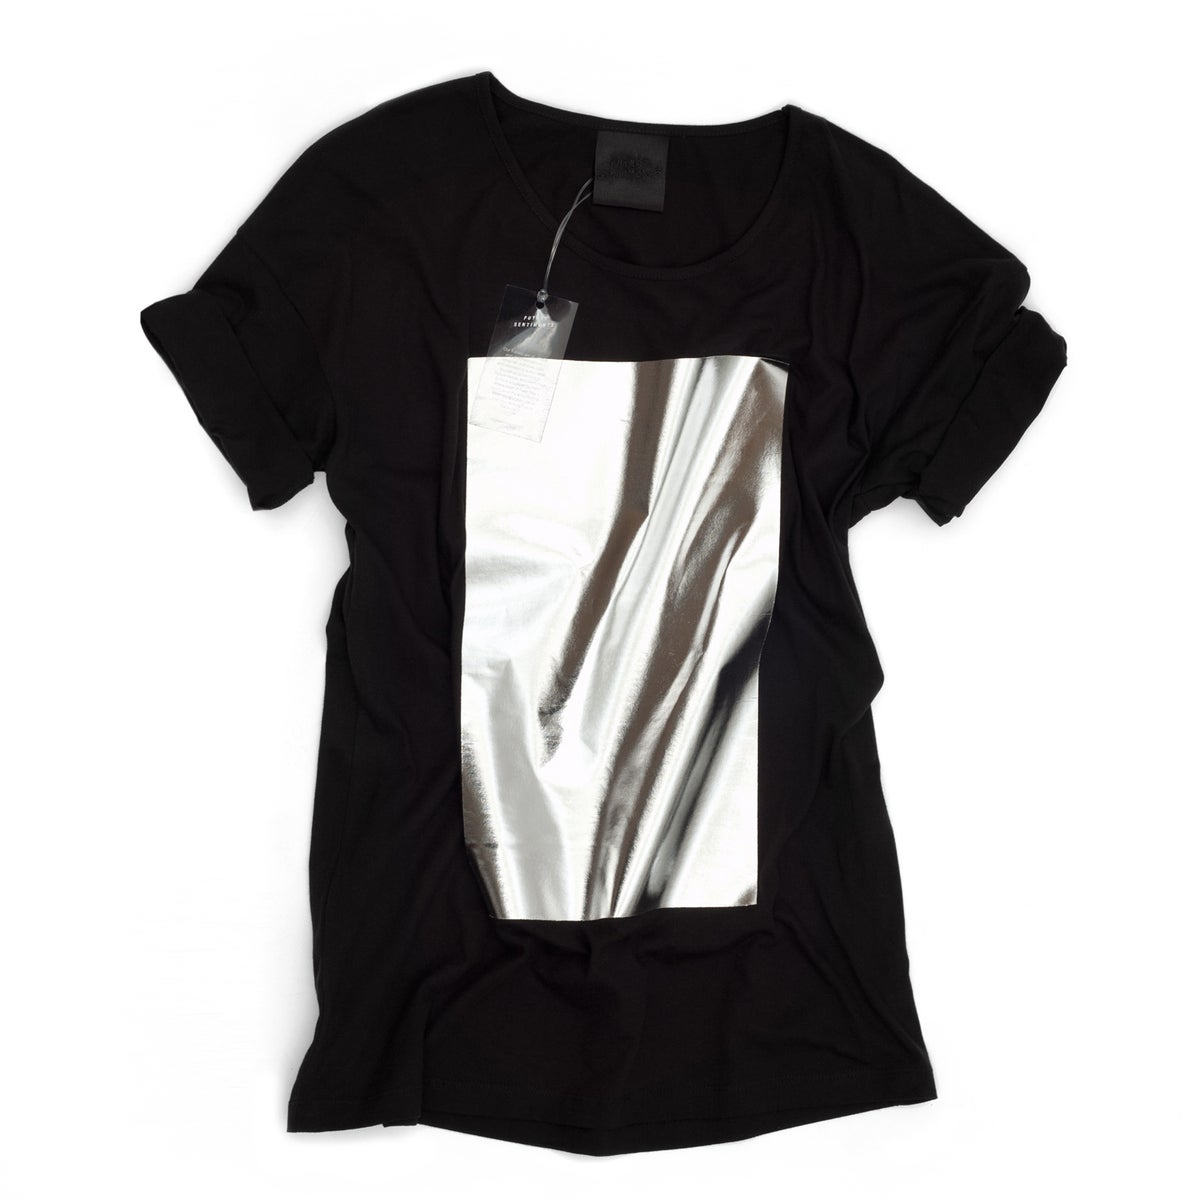 Unisex mirror tailored t shirt future sentiments store for Tailored t shirts online